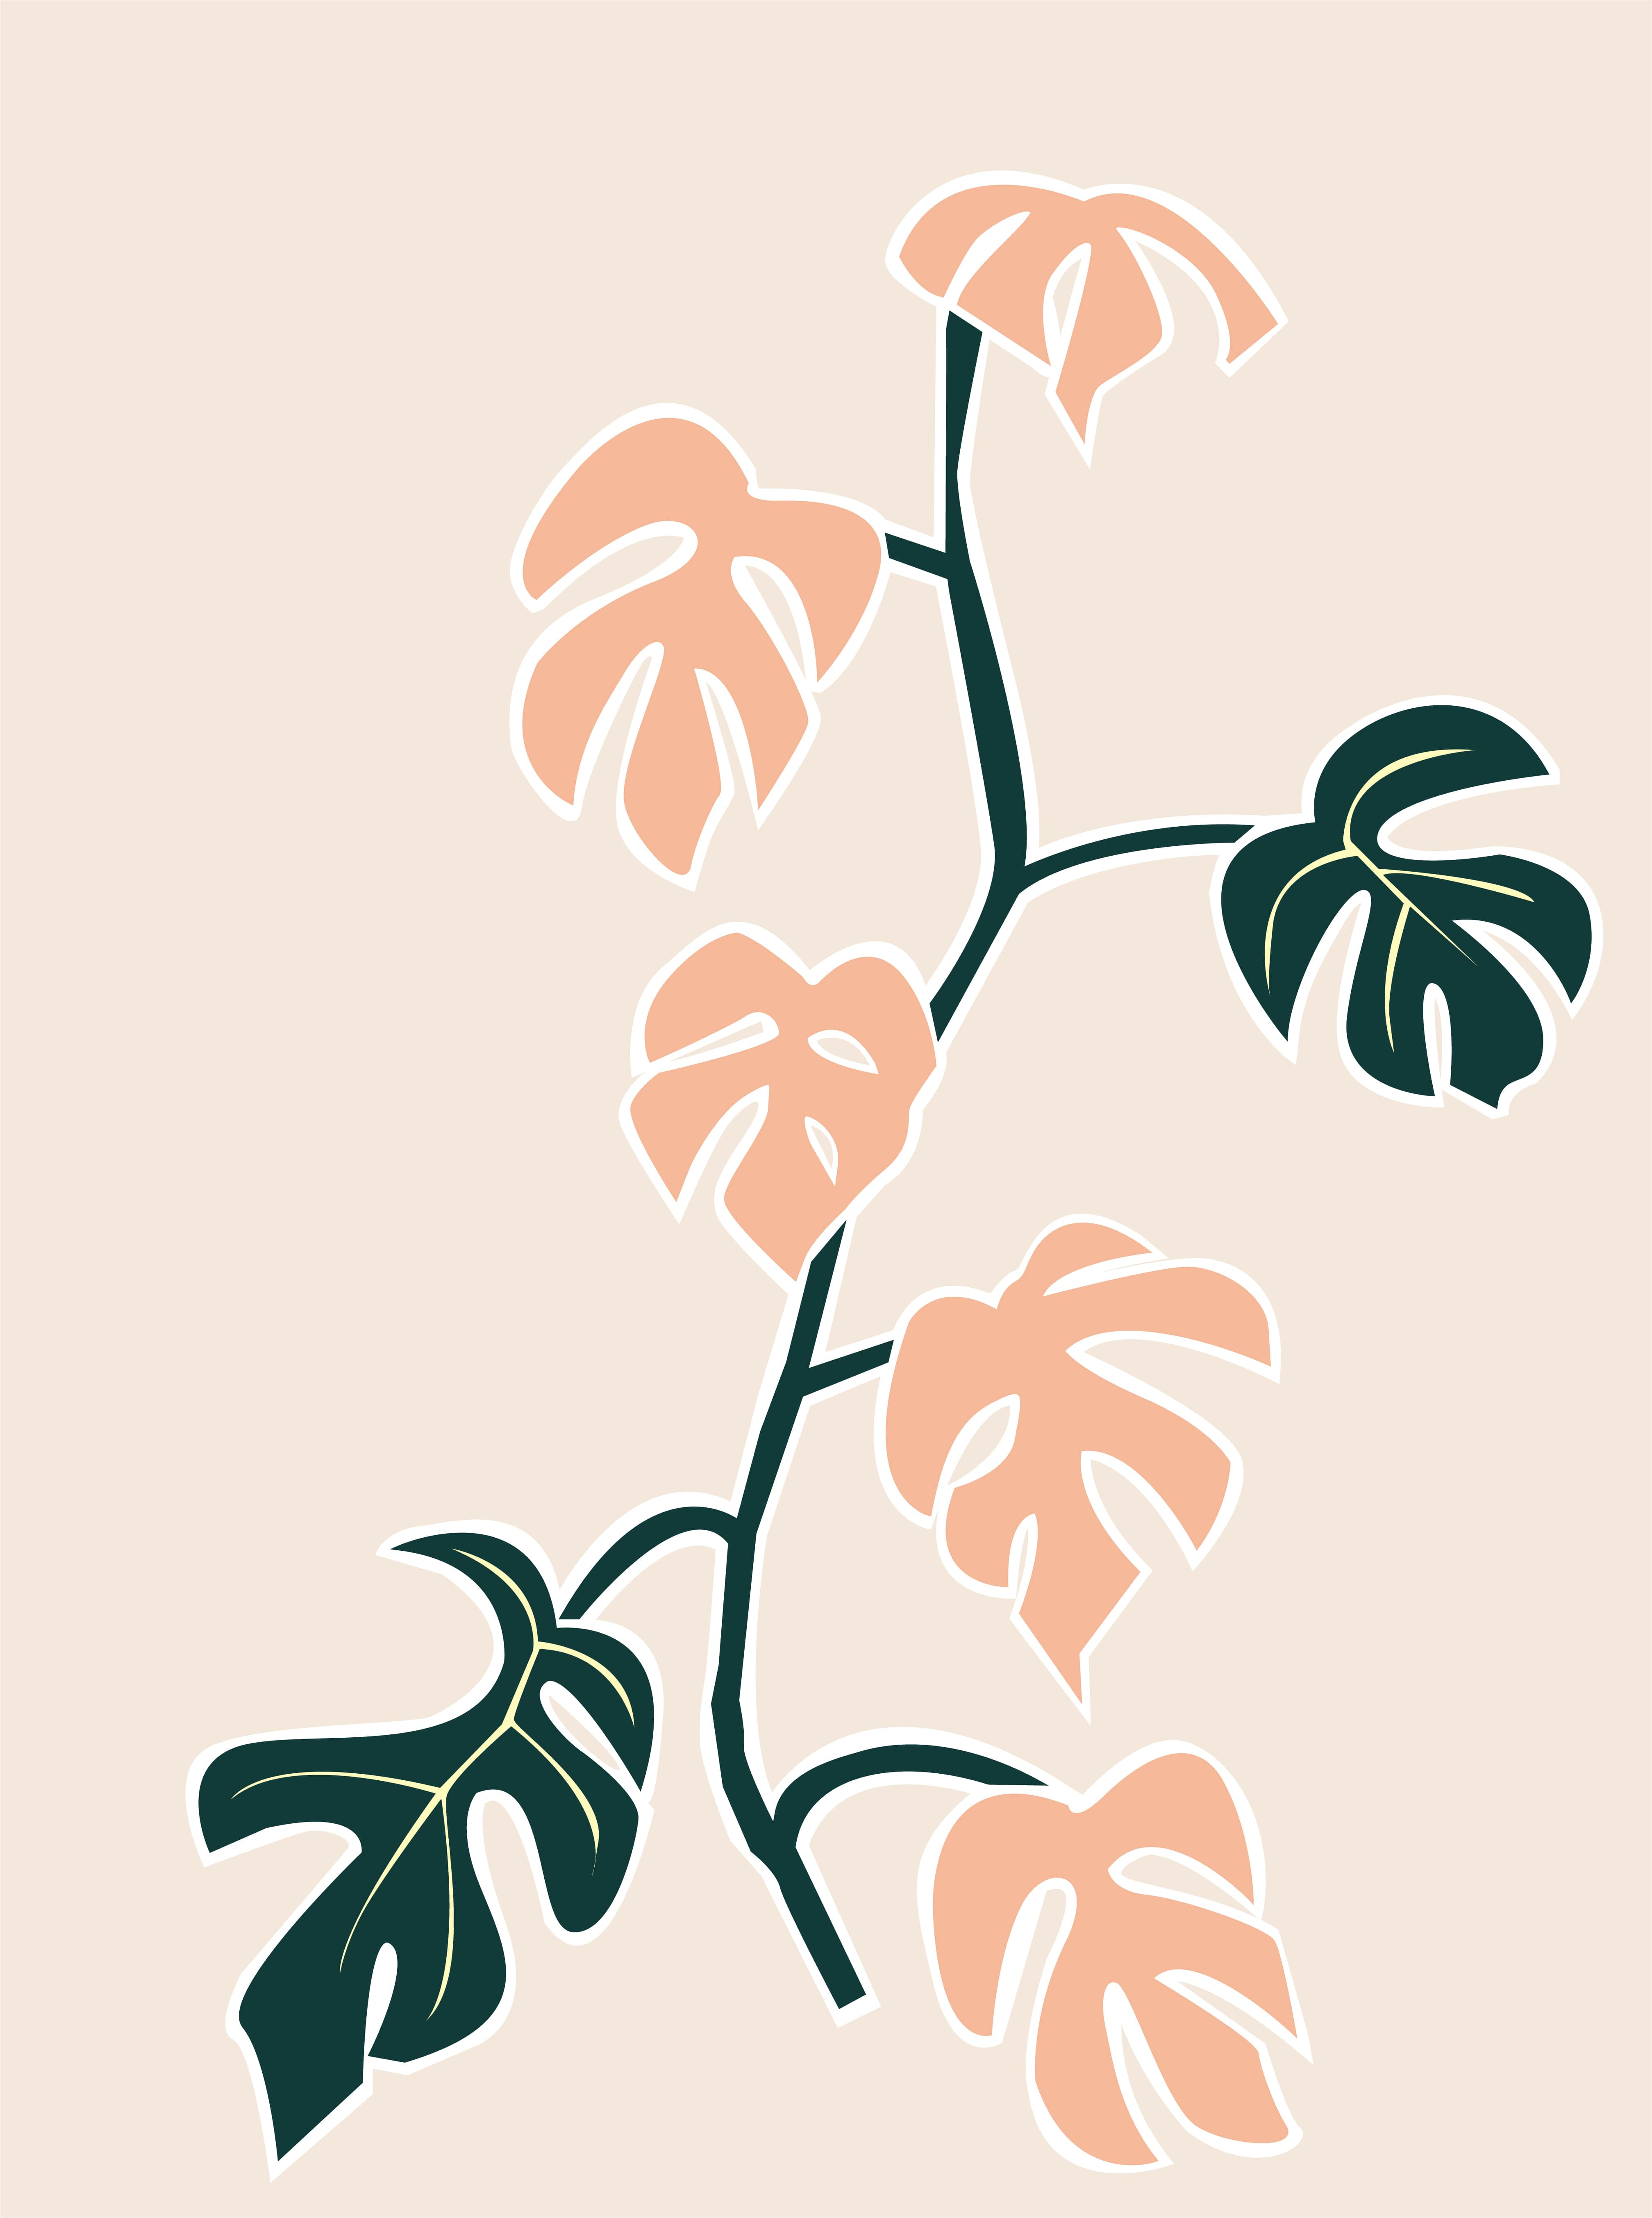 Plant care tips by Leaf Envy Mini Monstera light, watering, humidity, fertiliser requirements